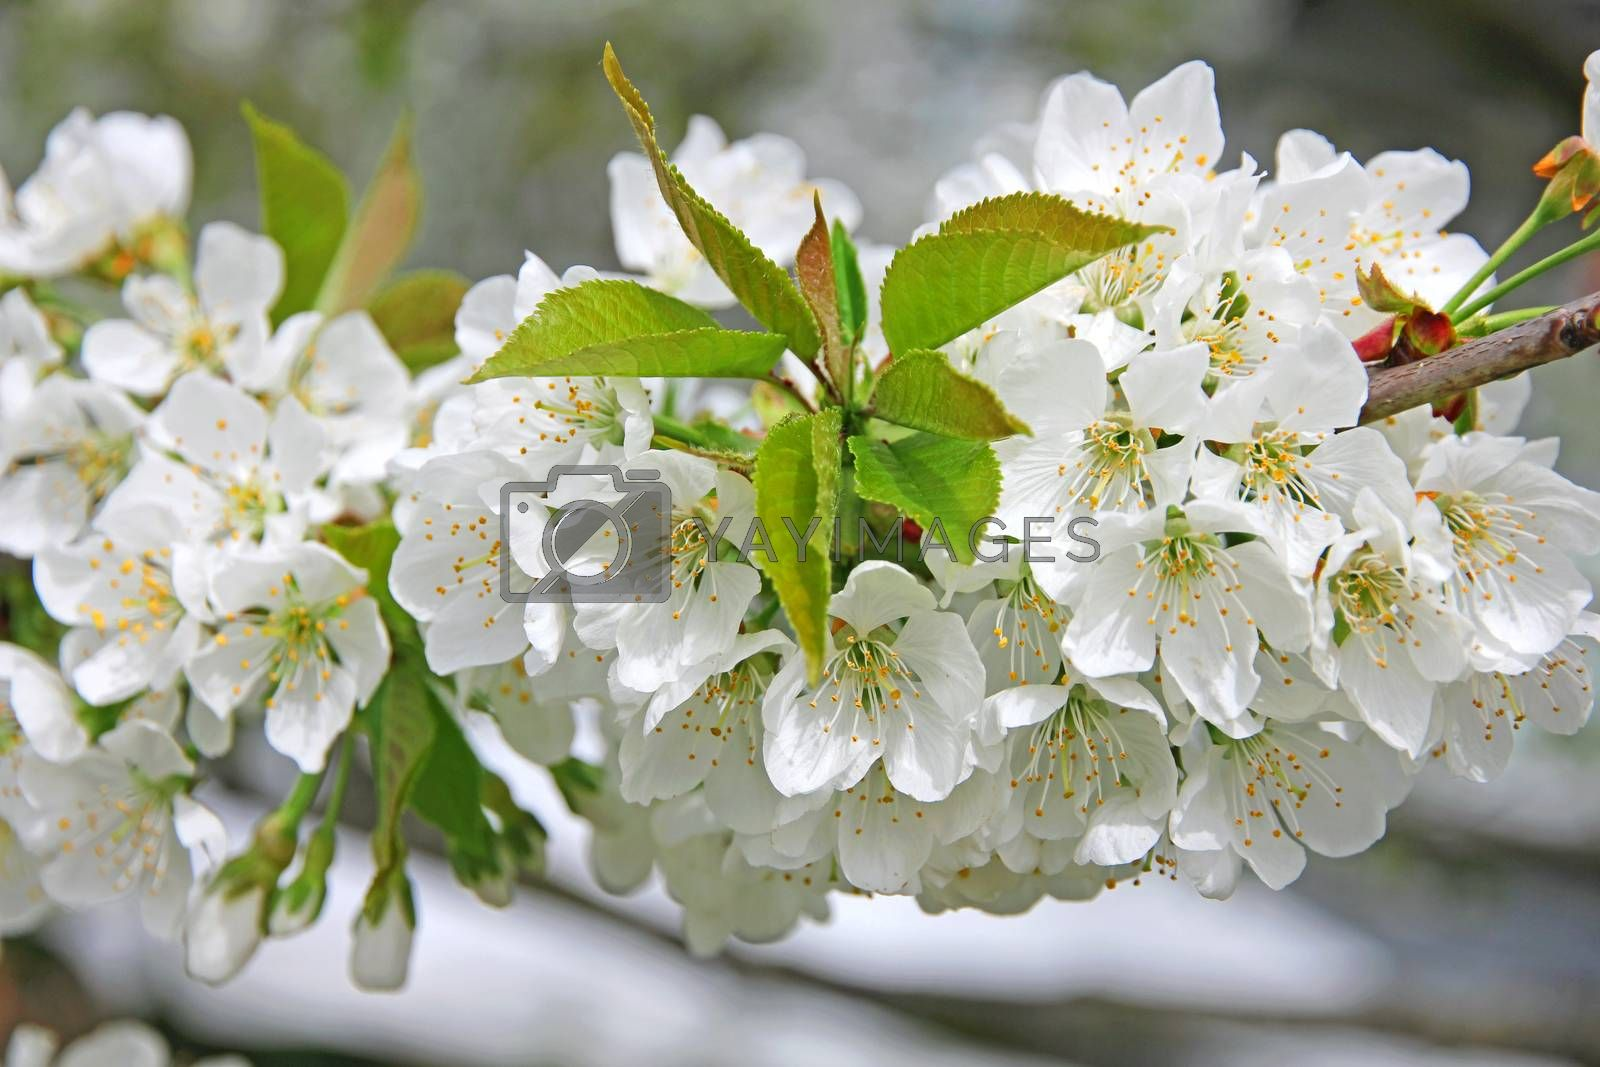 Royalty free image of Apple blossoms in spring  by oxanatravel